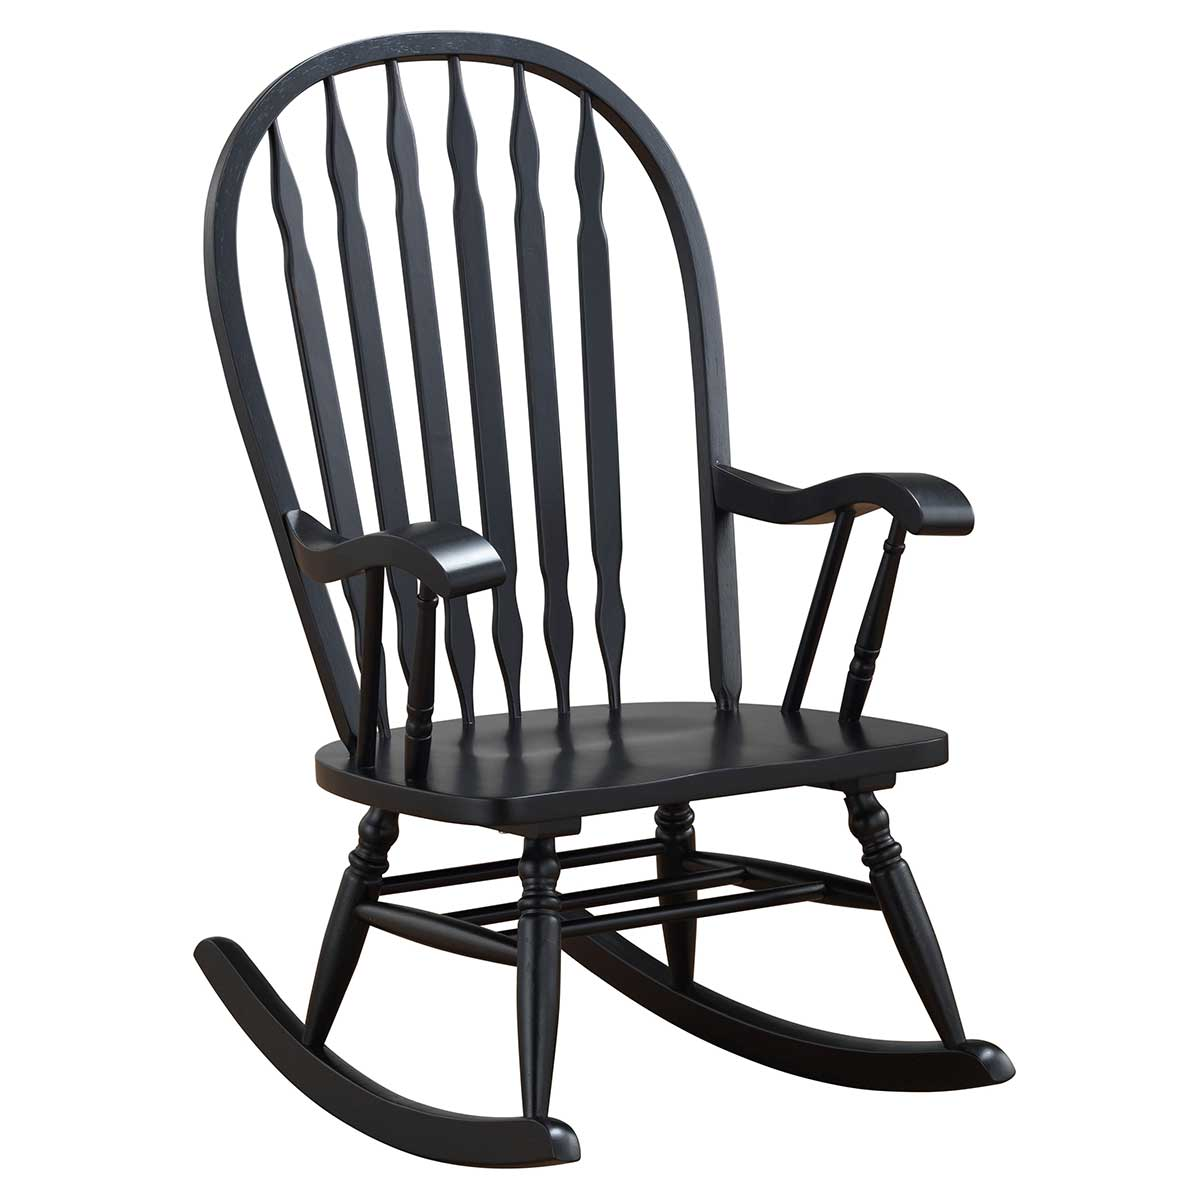 Enjoyable Black Classic Americana Style Windsor Rocker Gmtry Best Dining Table And Chair Ideas Images Gmtryco